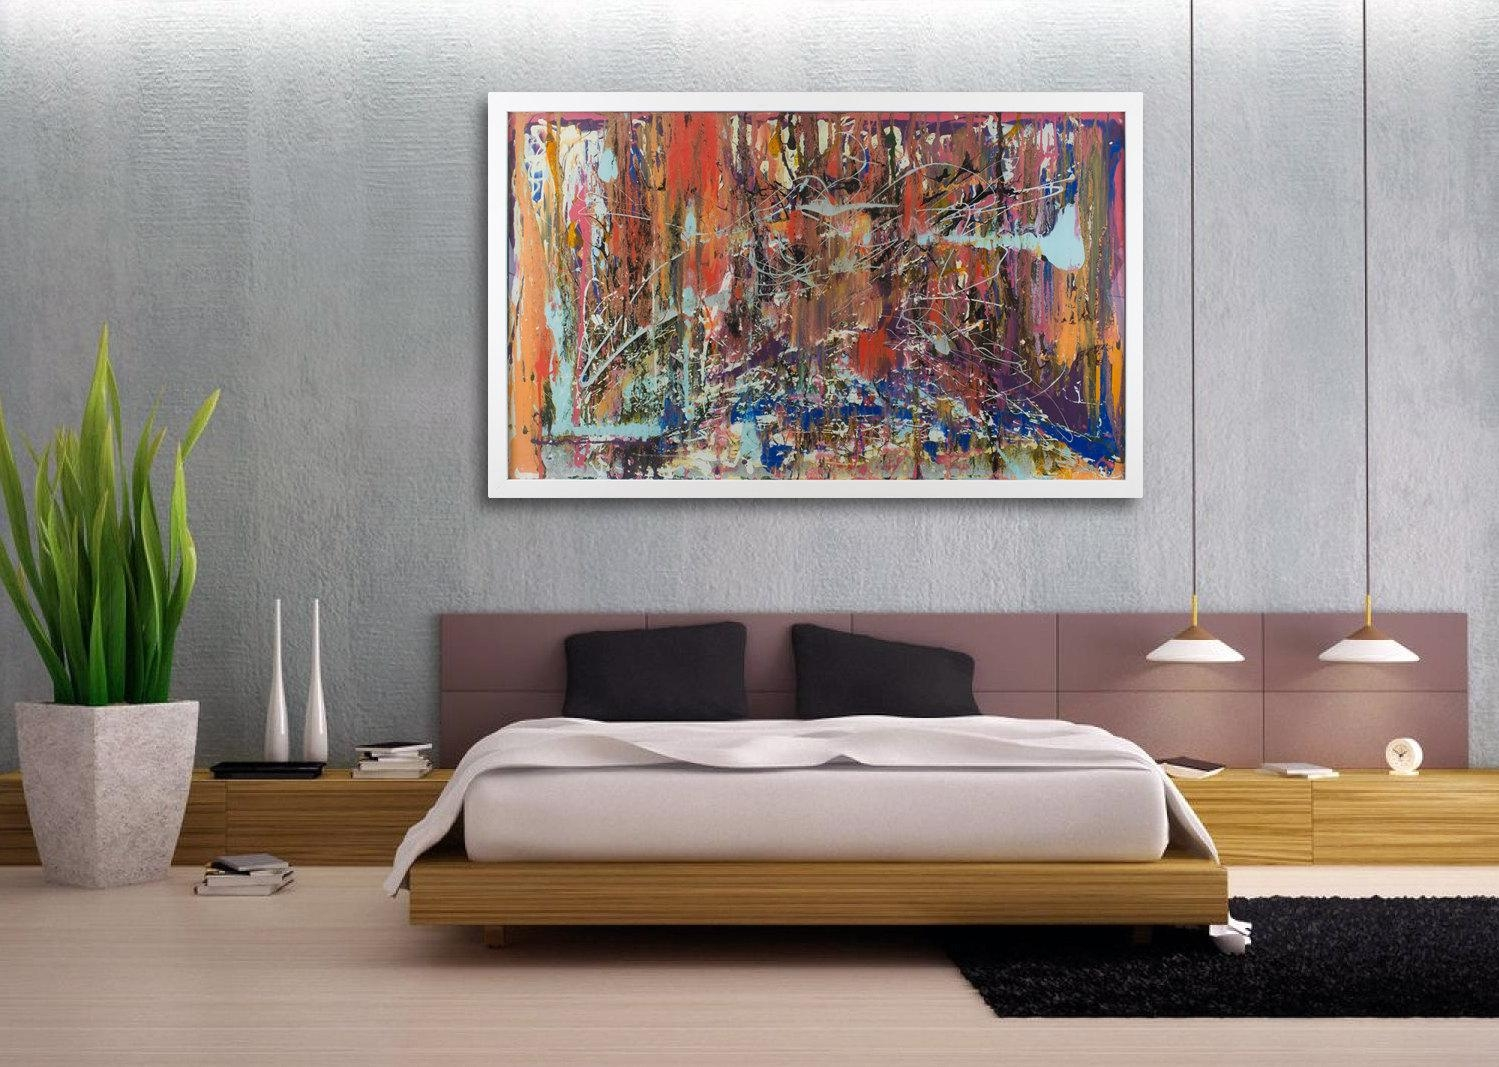 Extra Large Contemporary Wall Art : Best Way To Use Contemporary Throughout Art For Large Wall (View 10 of 20)